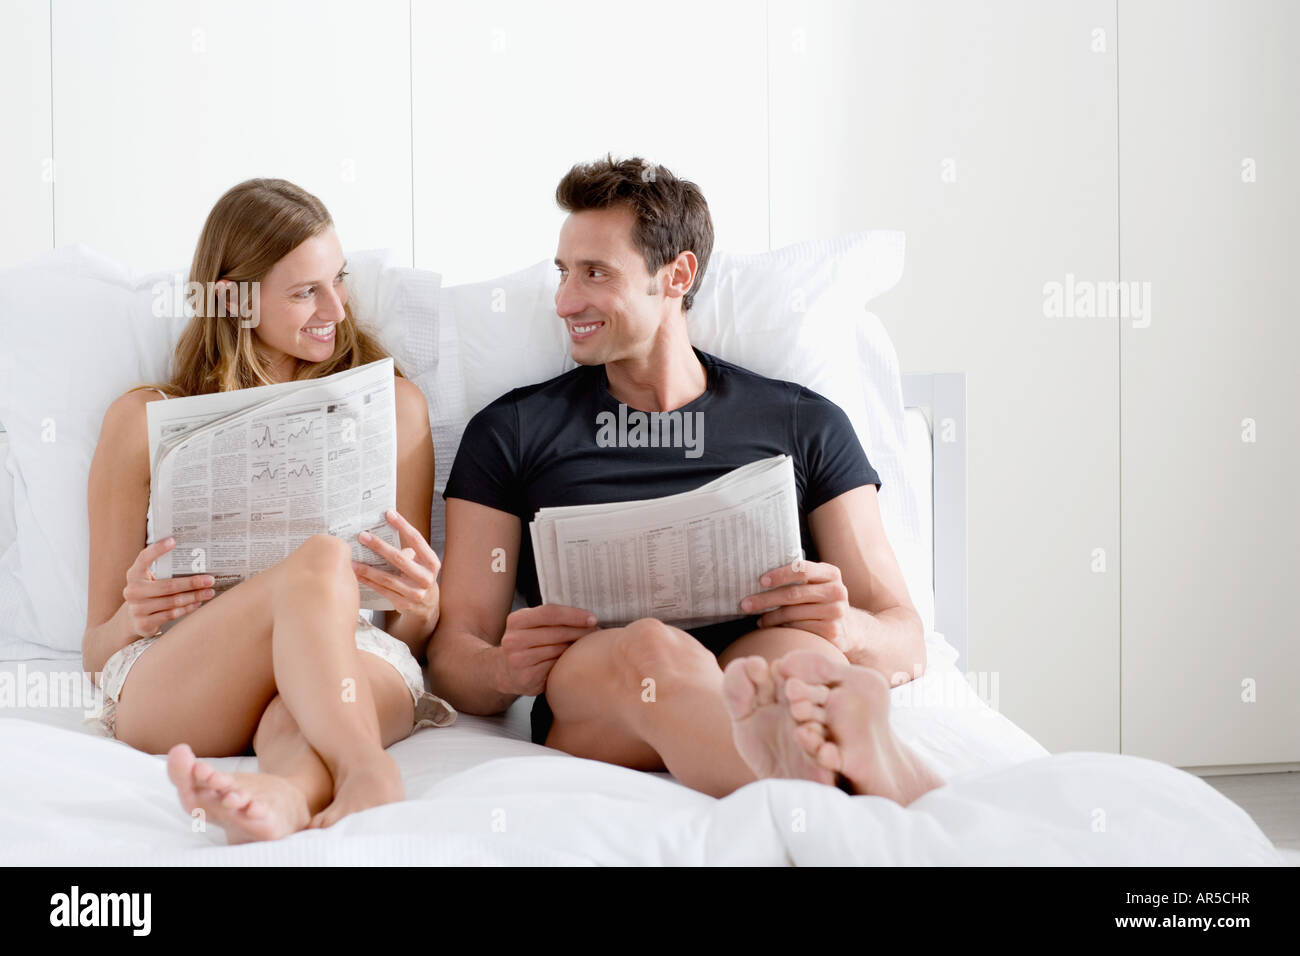 Couple with newspapers - Stock Image